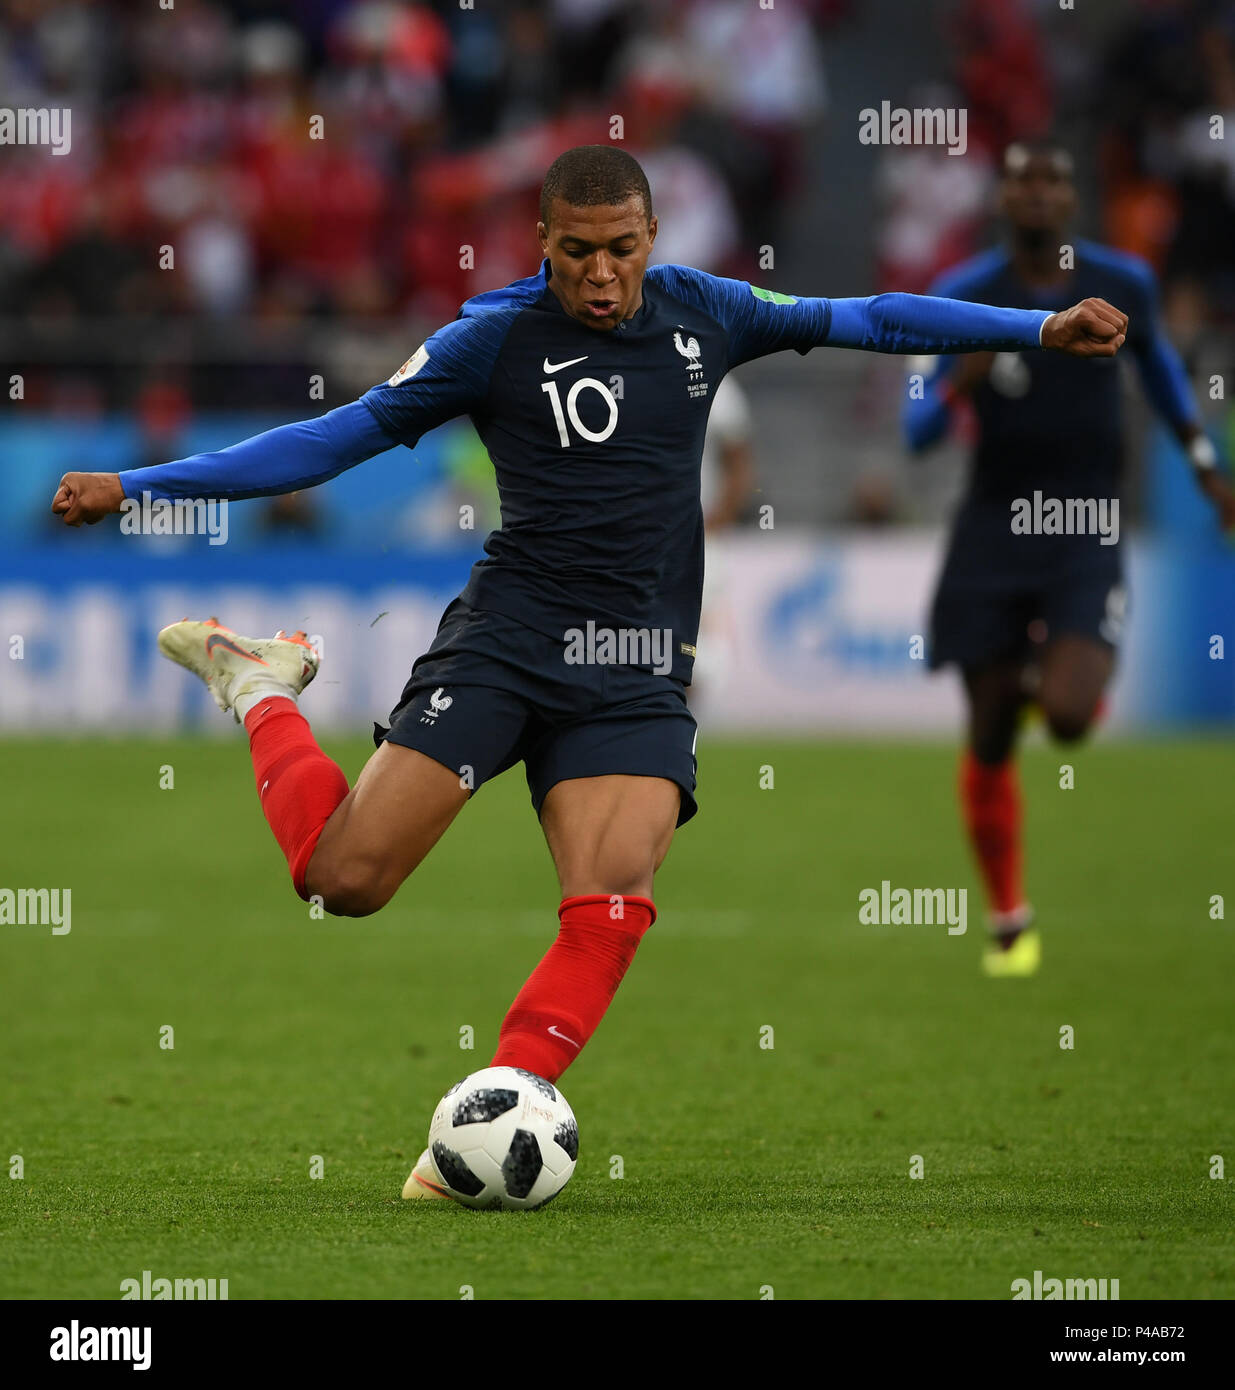 Yekaterinburg, Russia. 21st June, 2018. Kylian Mbappe of France competes during the 2018 FIFA World Cup Group C match between France and Peru in Yekaterinburg, Russia, June 21, 2018. Credit: Du Yu/Xinhua/Alamy Live News Stock Photo